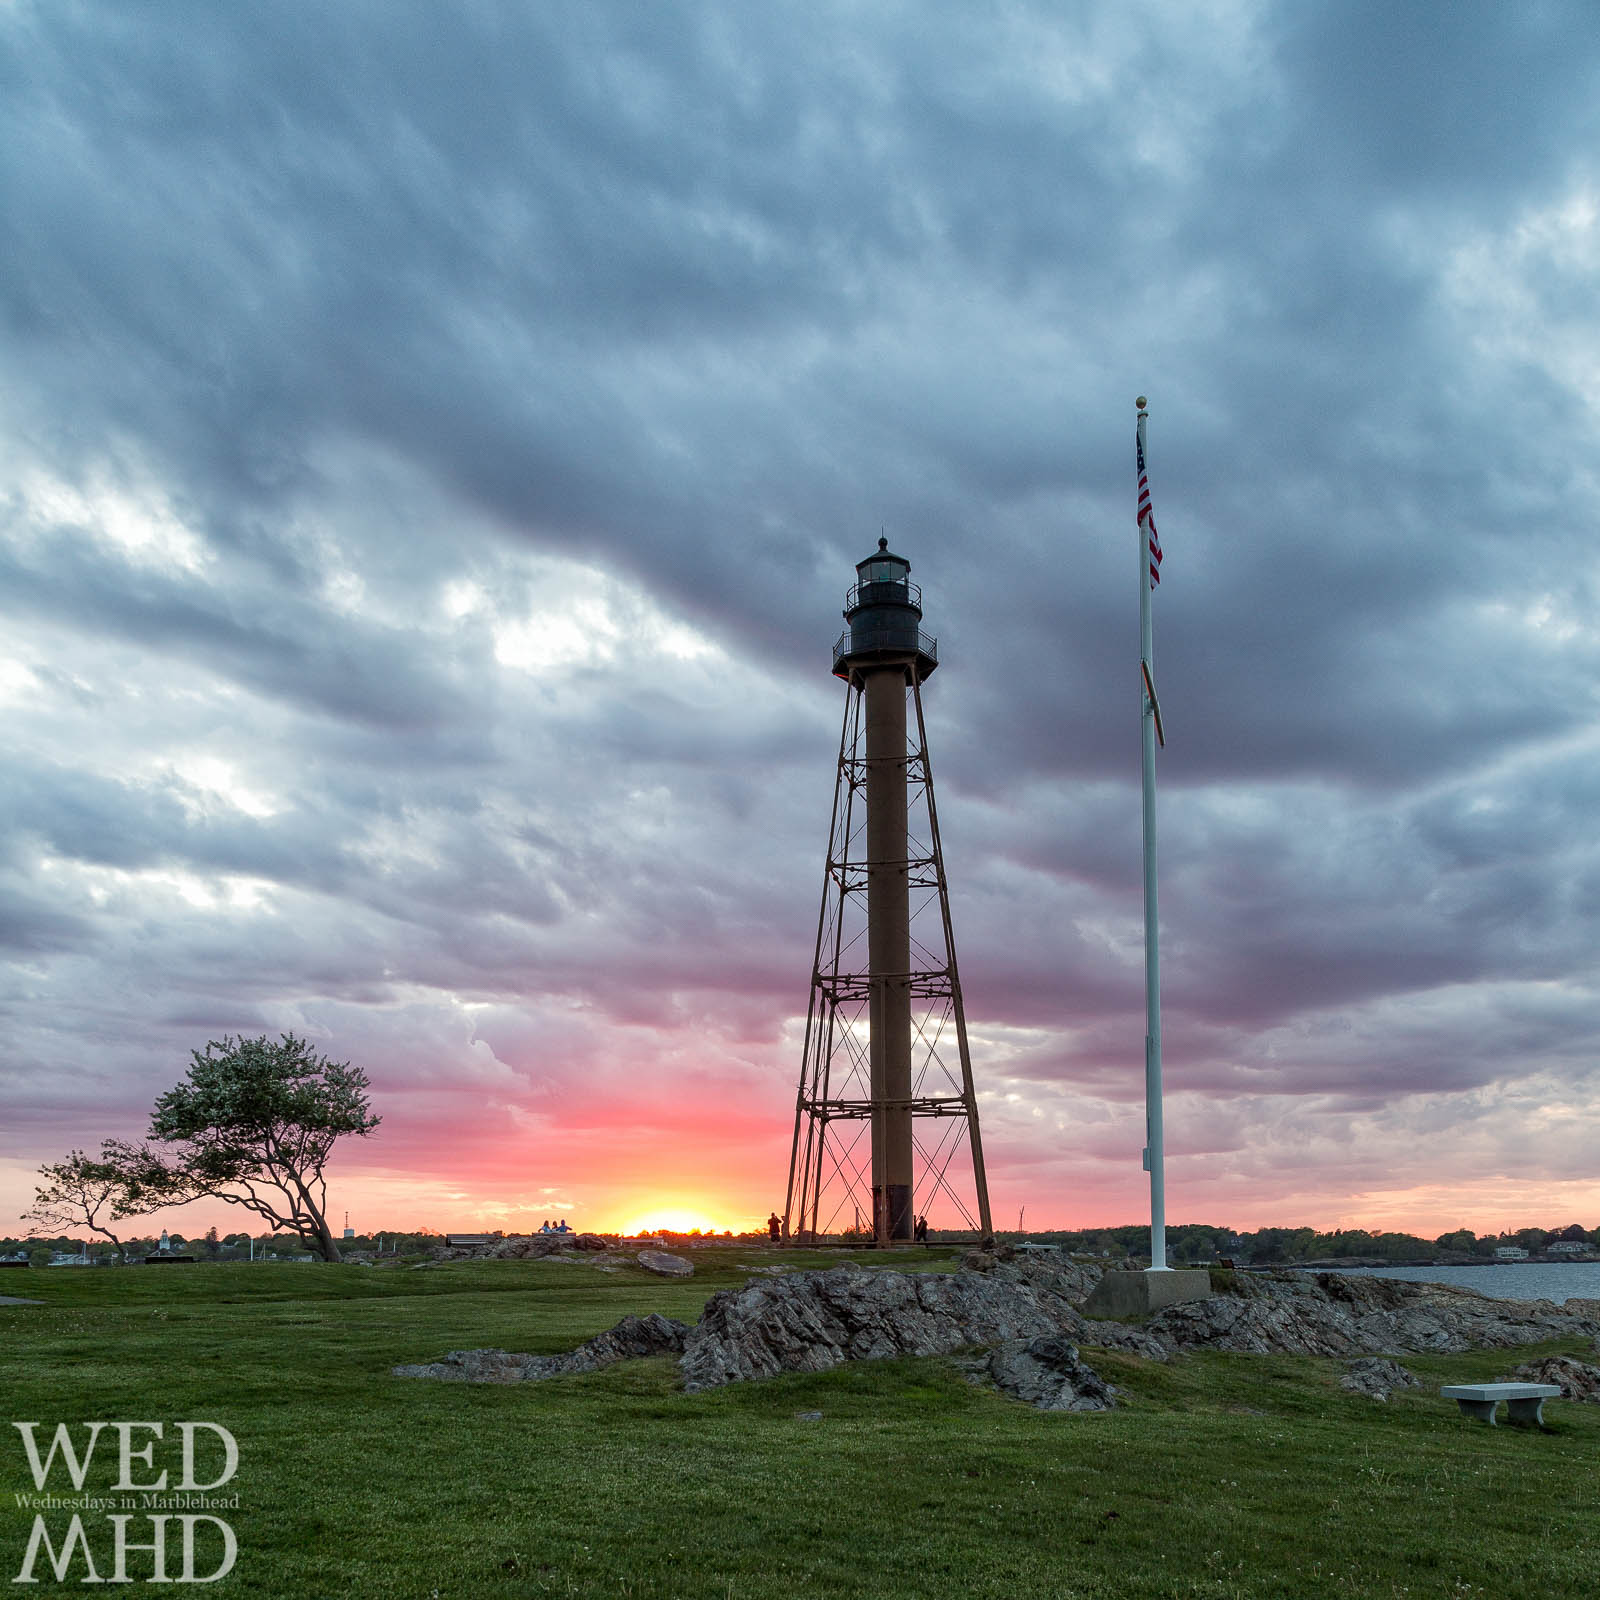 The days end results in an explosion of color at the base of Marblehead Light